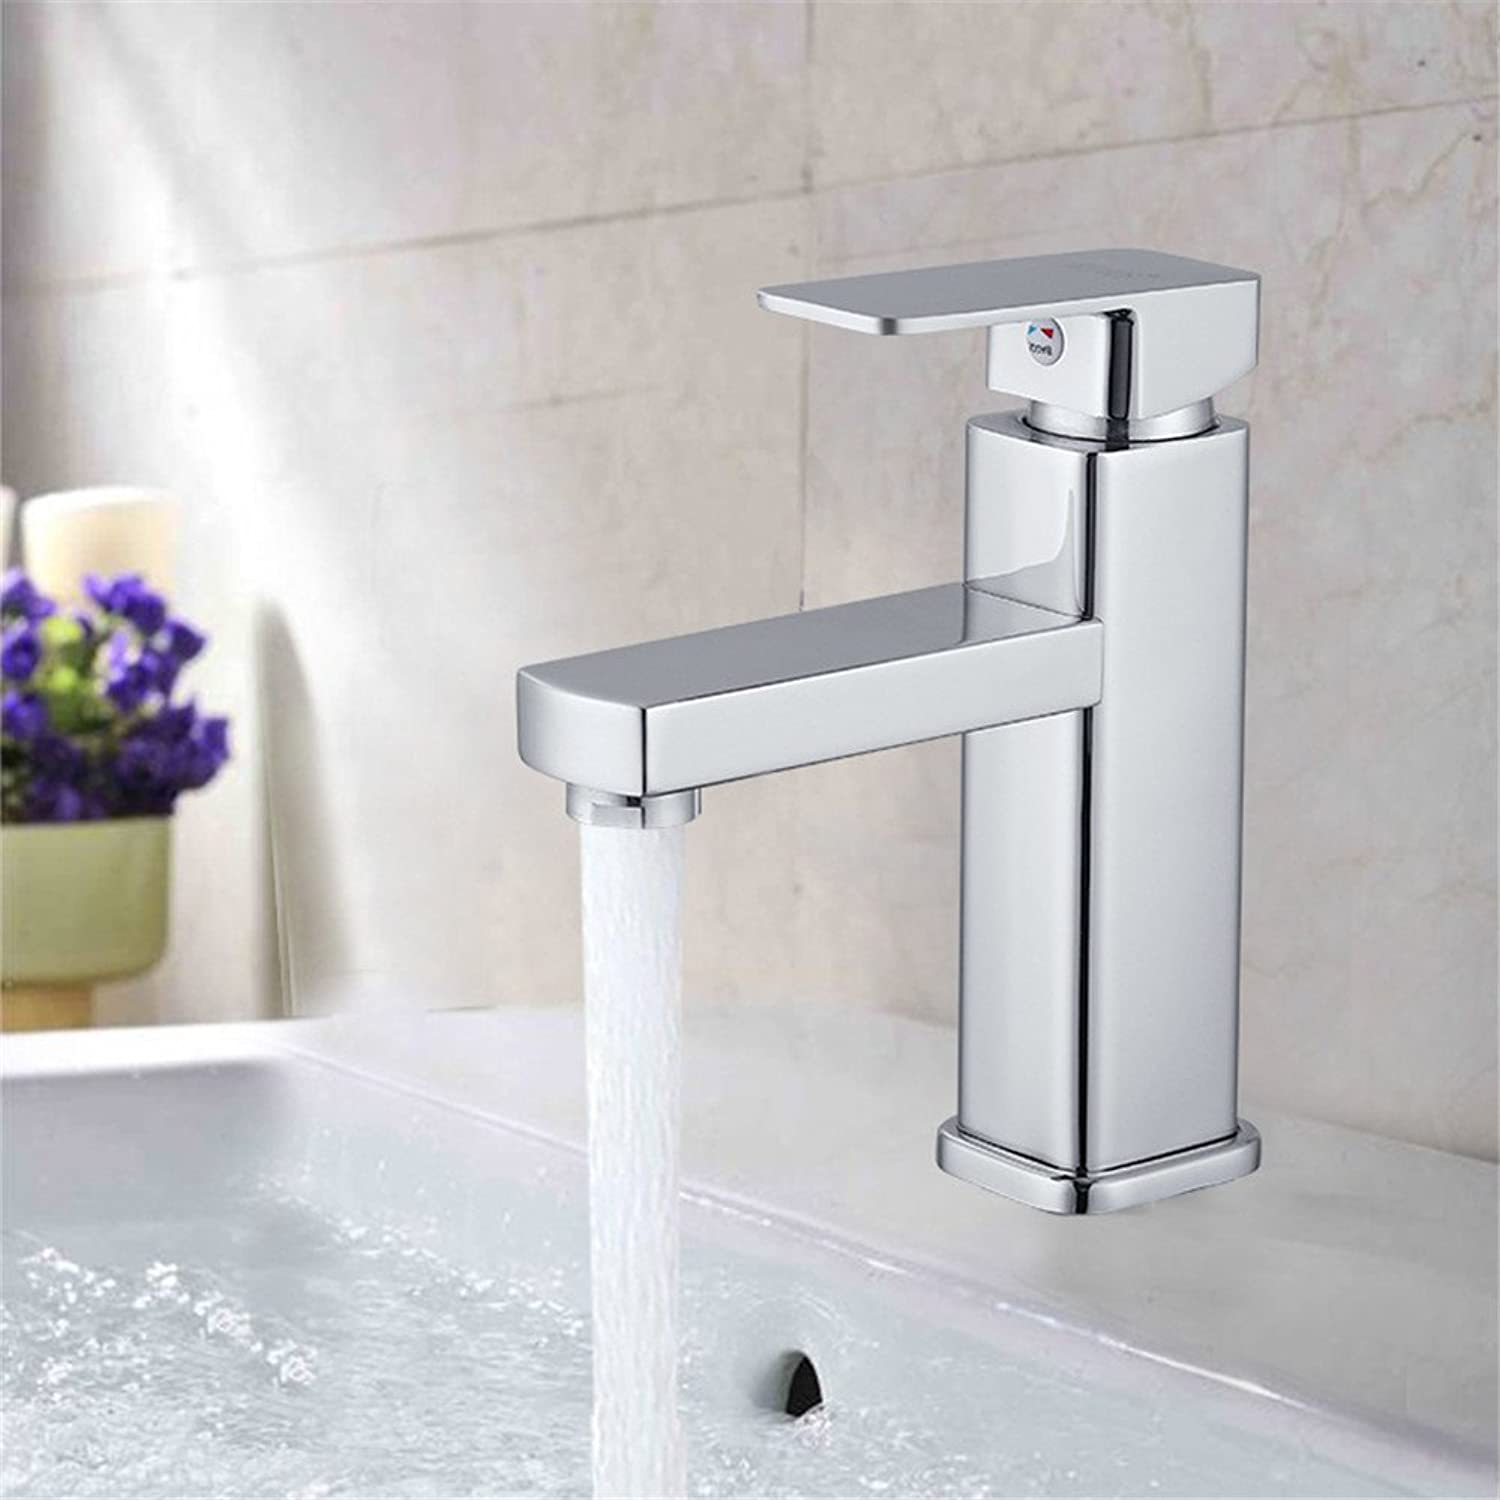 TYAW-SHOP The Kitchen single hole cold and hot water tap A wrench.